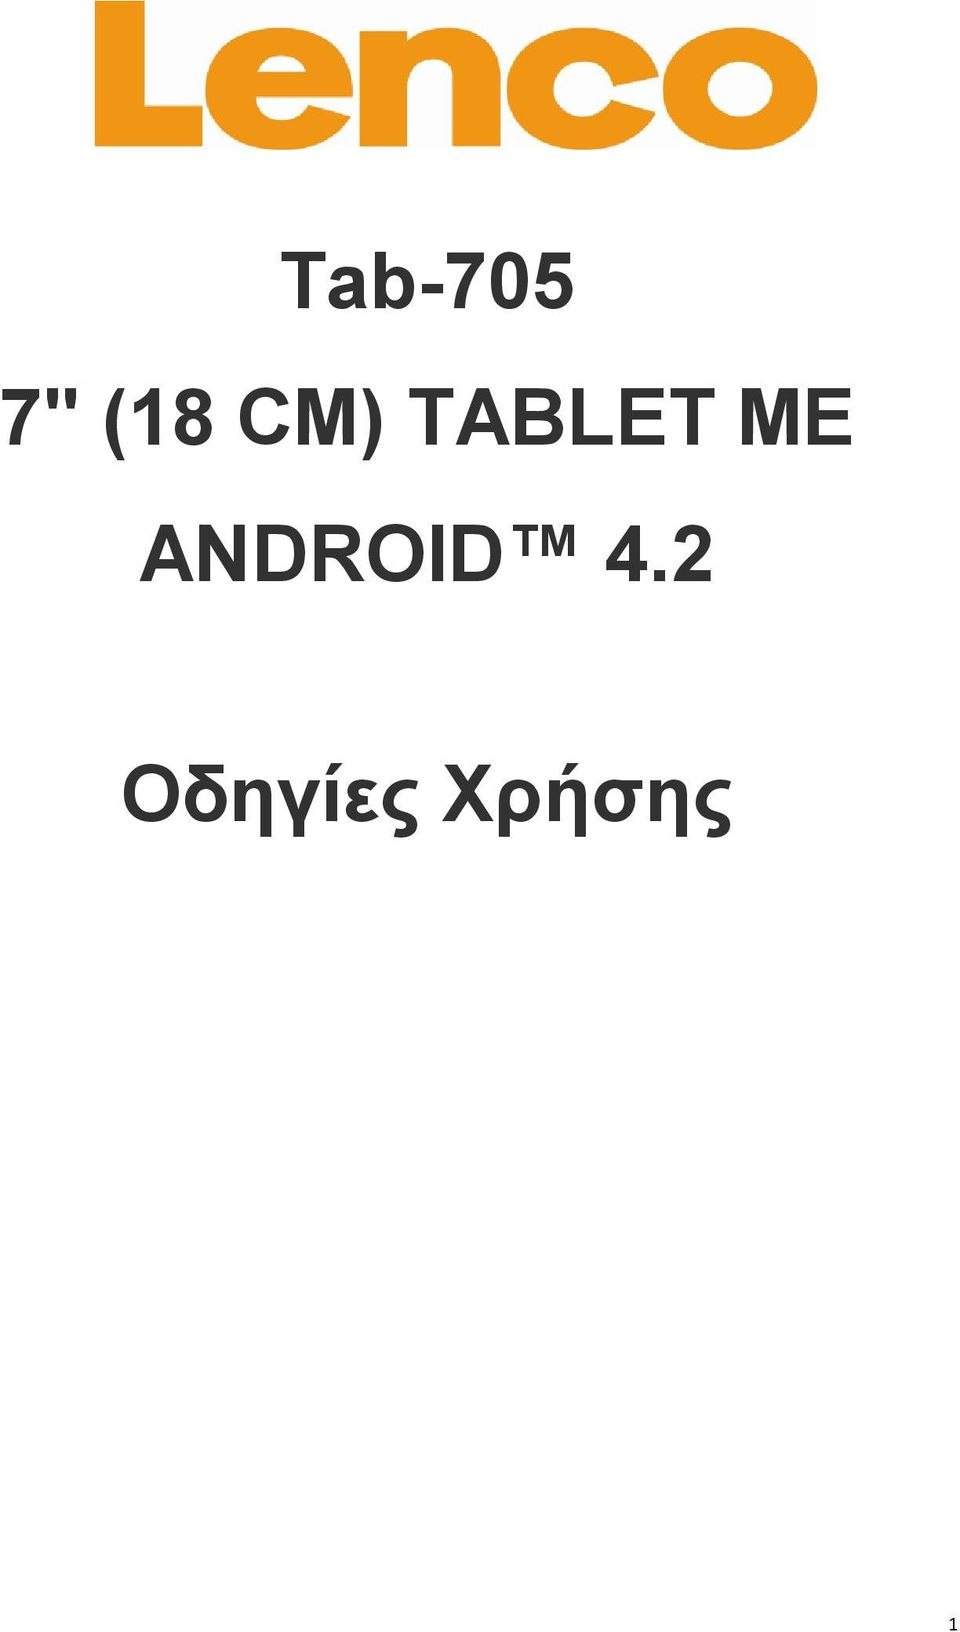 ANDROID 4.